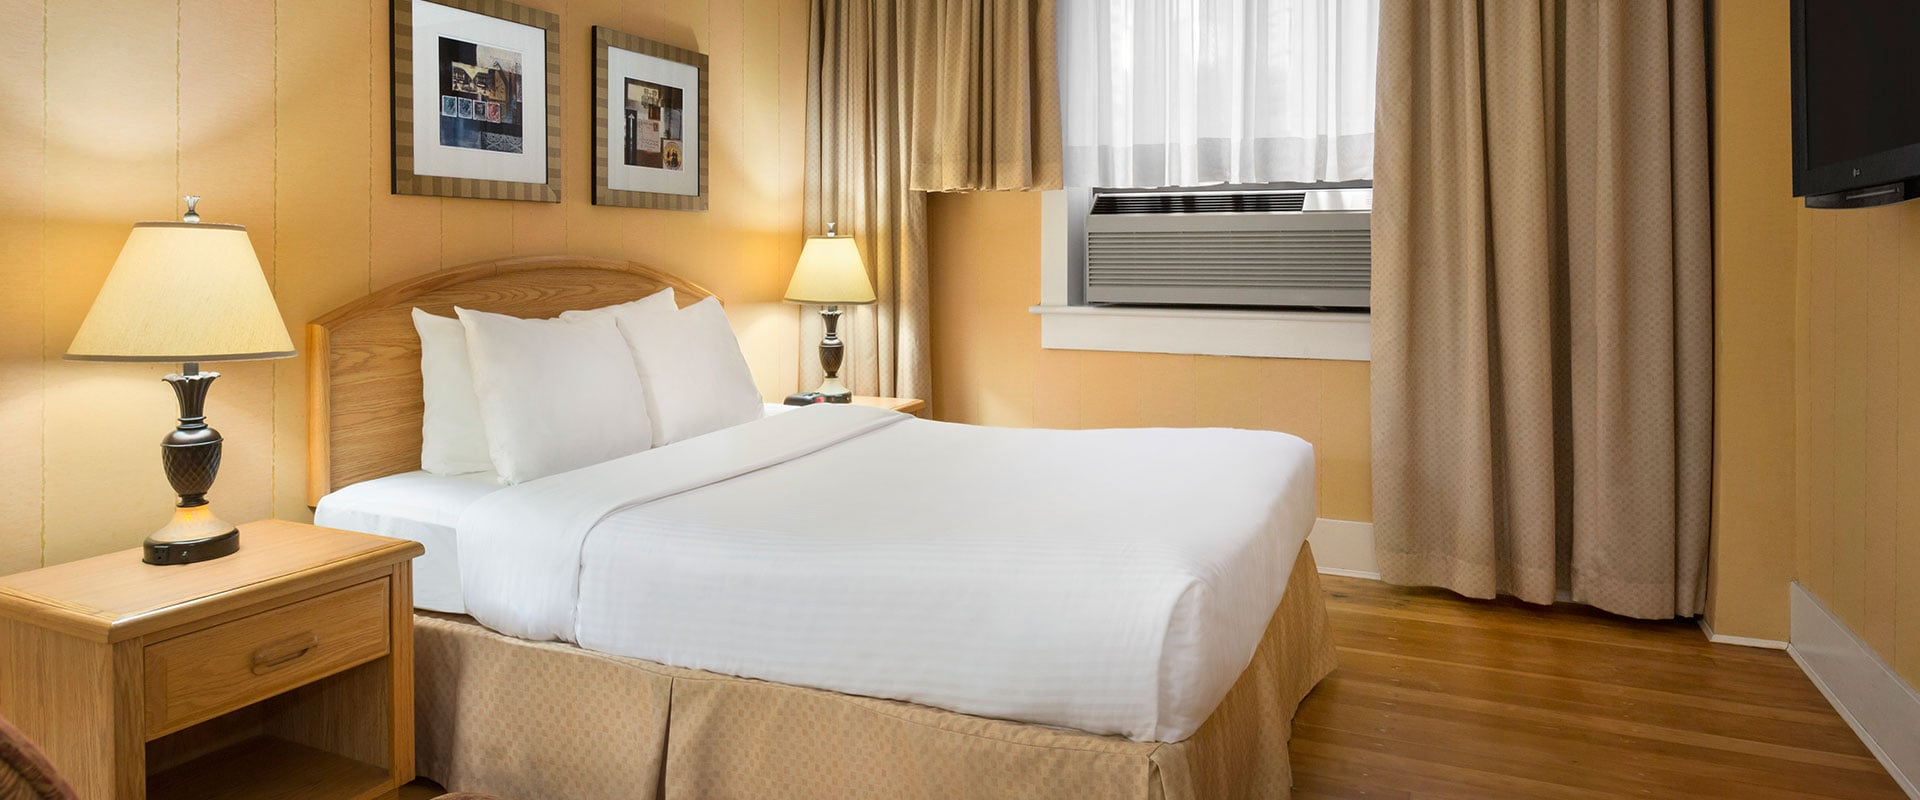 Canary yellow walls, natural wood colored bedside tables, and beige curtains are contrasted against a bed in bright white linen in the Standard Double suite at Days Inn Vancouver.